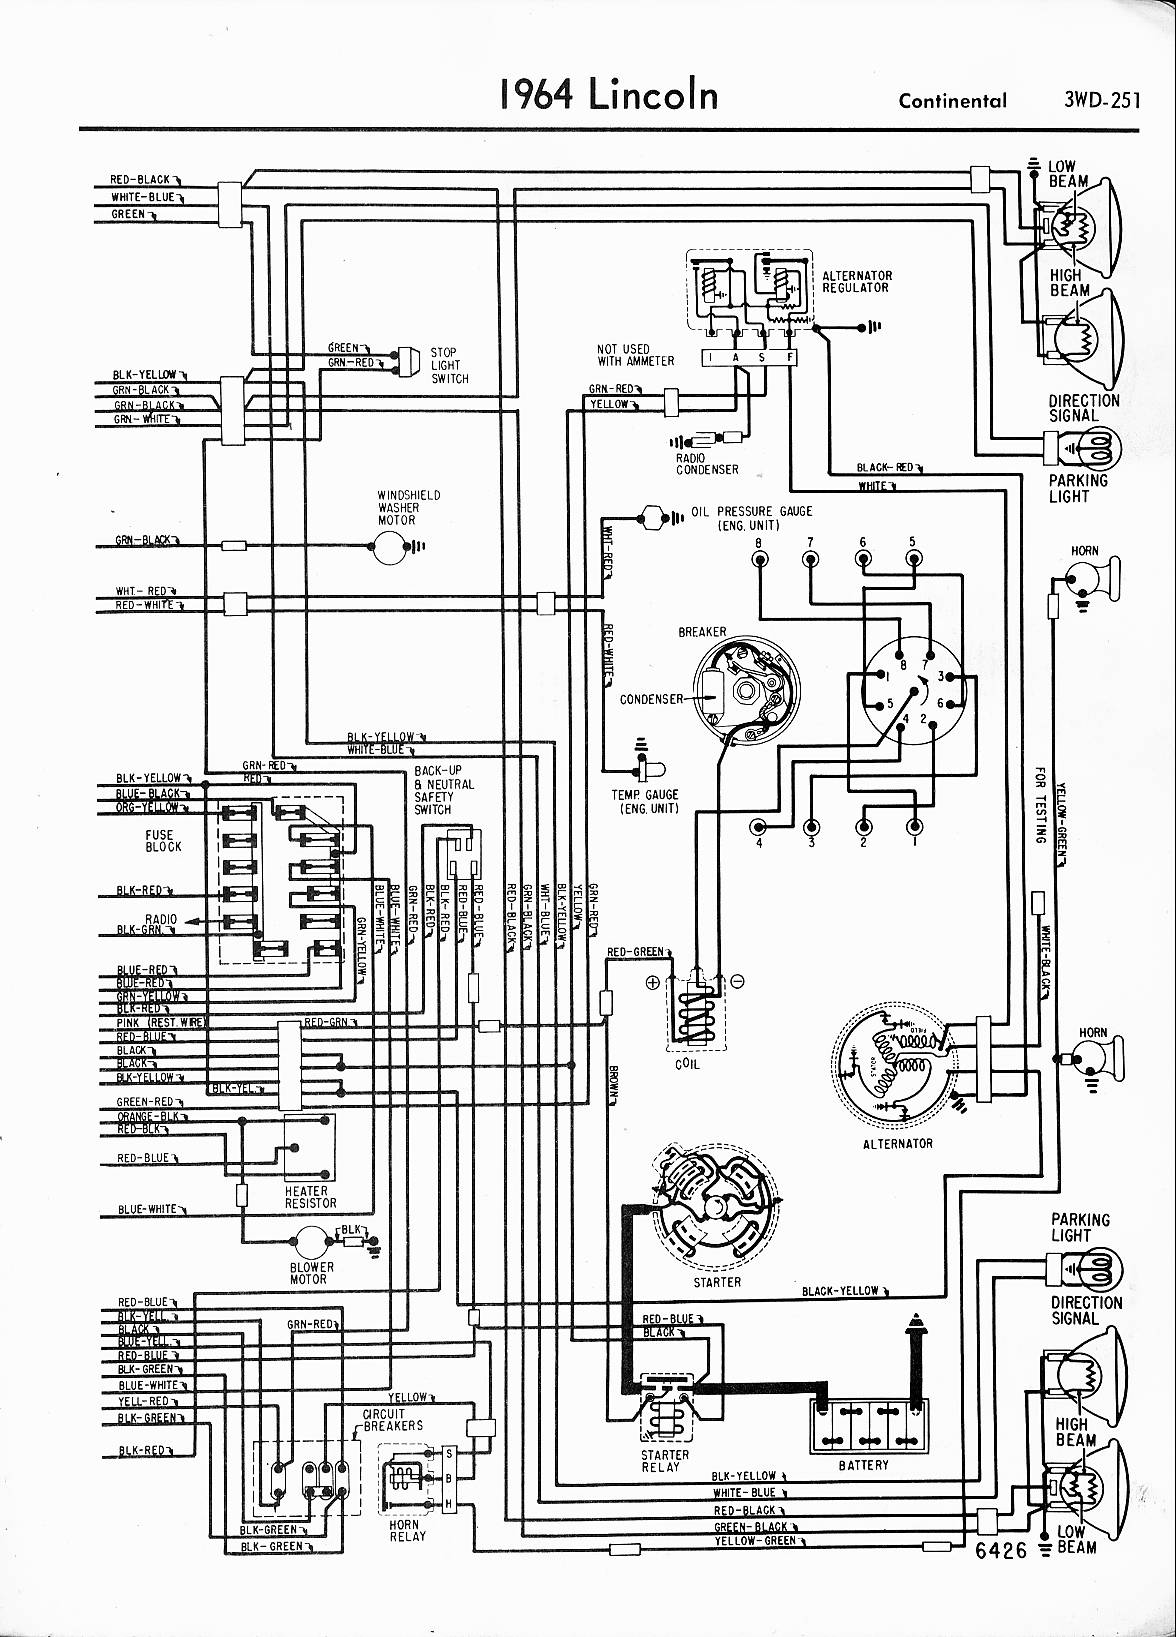 1966 Impala Convertible Wiring Diagram Library 64 Headlight 1960 Mark V Window 33 1965 Lincoln Continental 1961